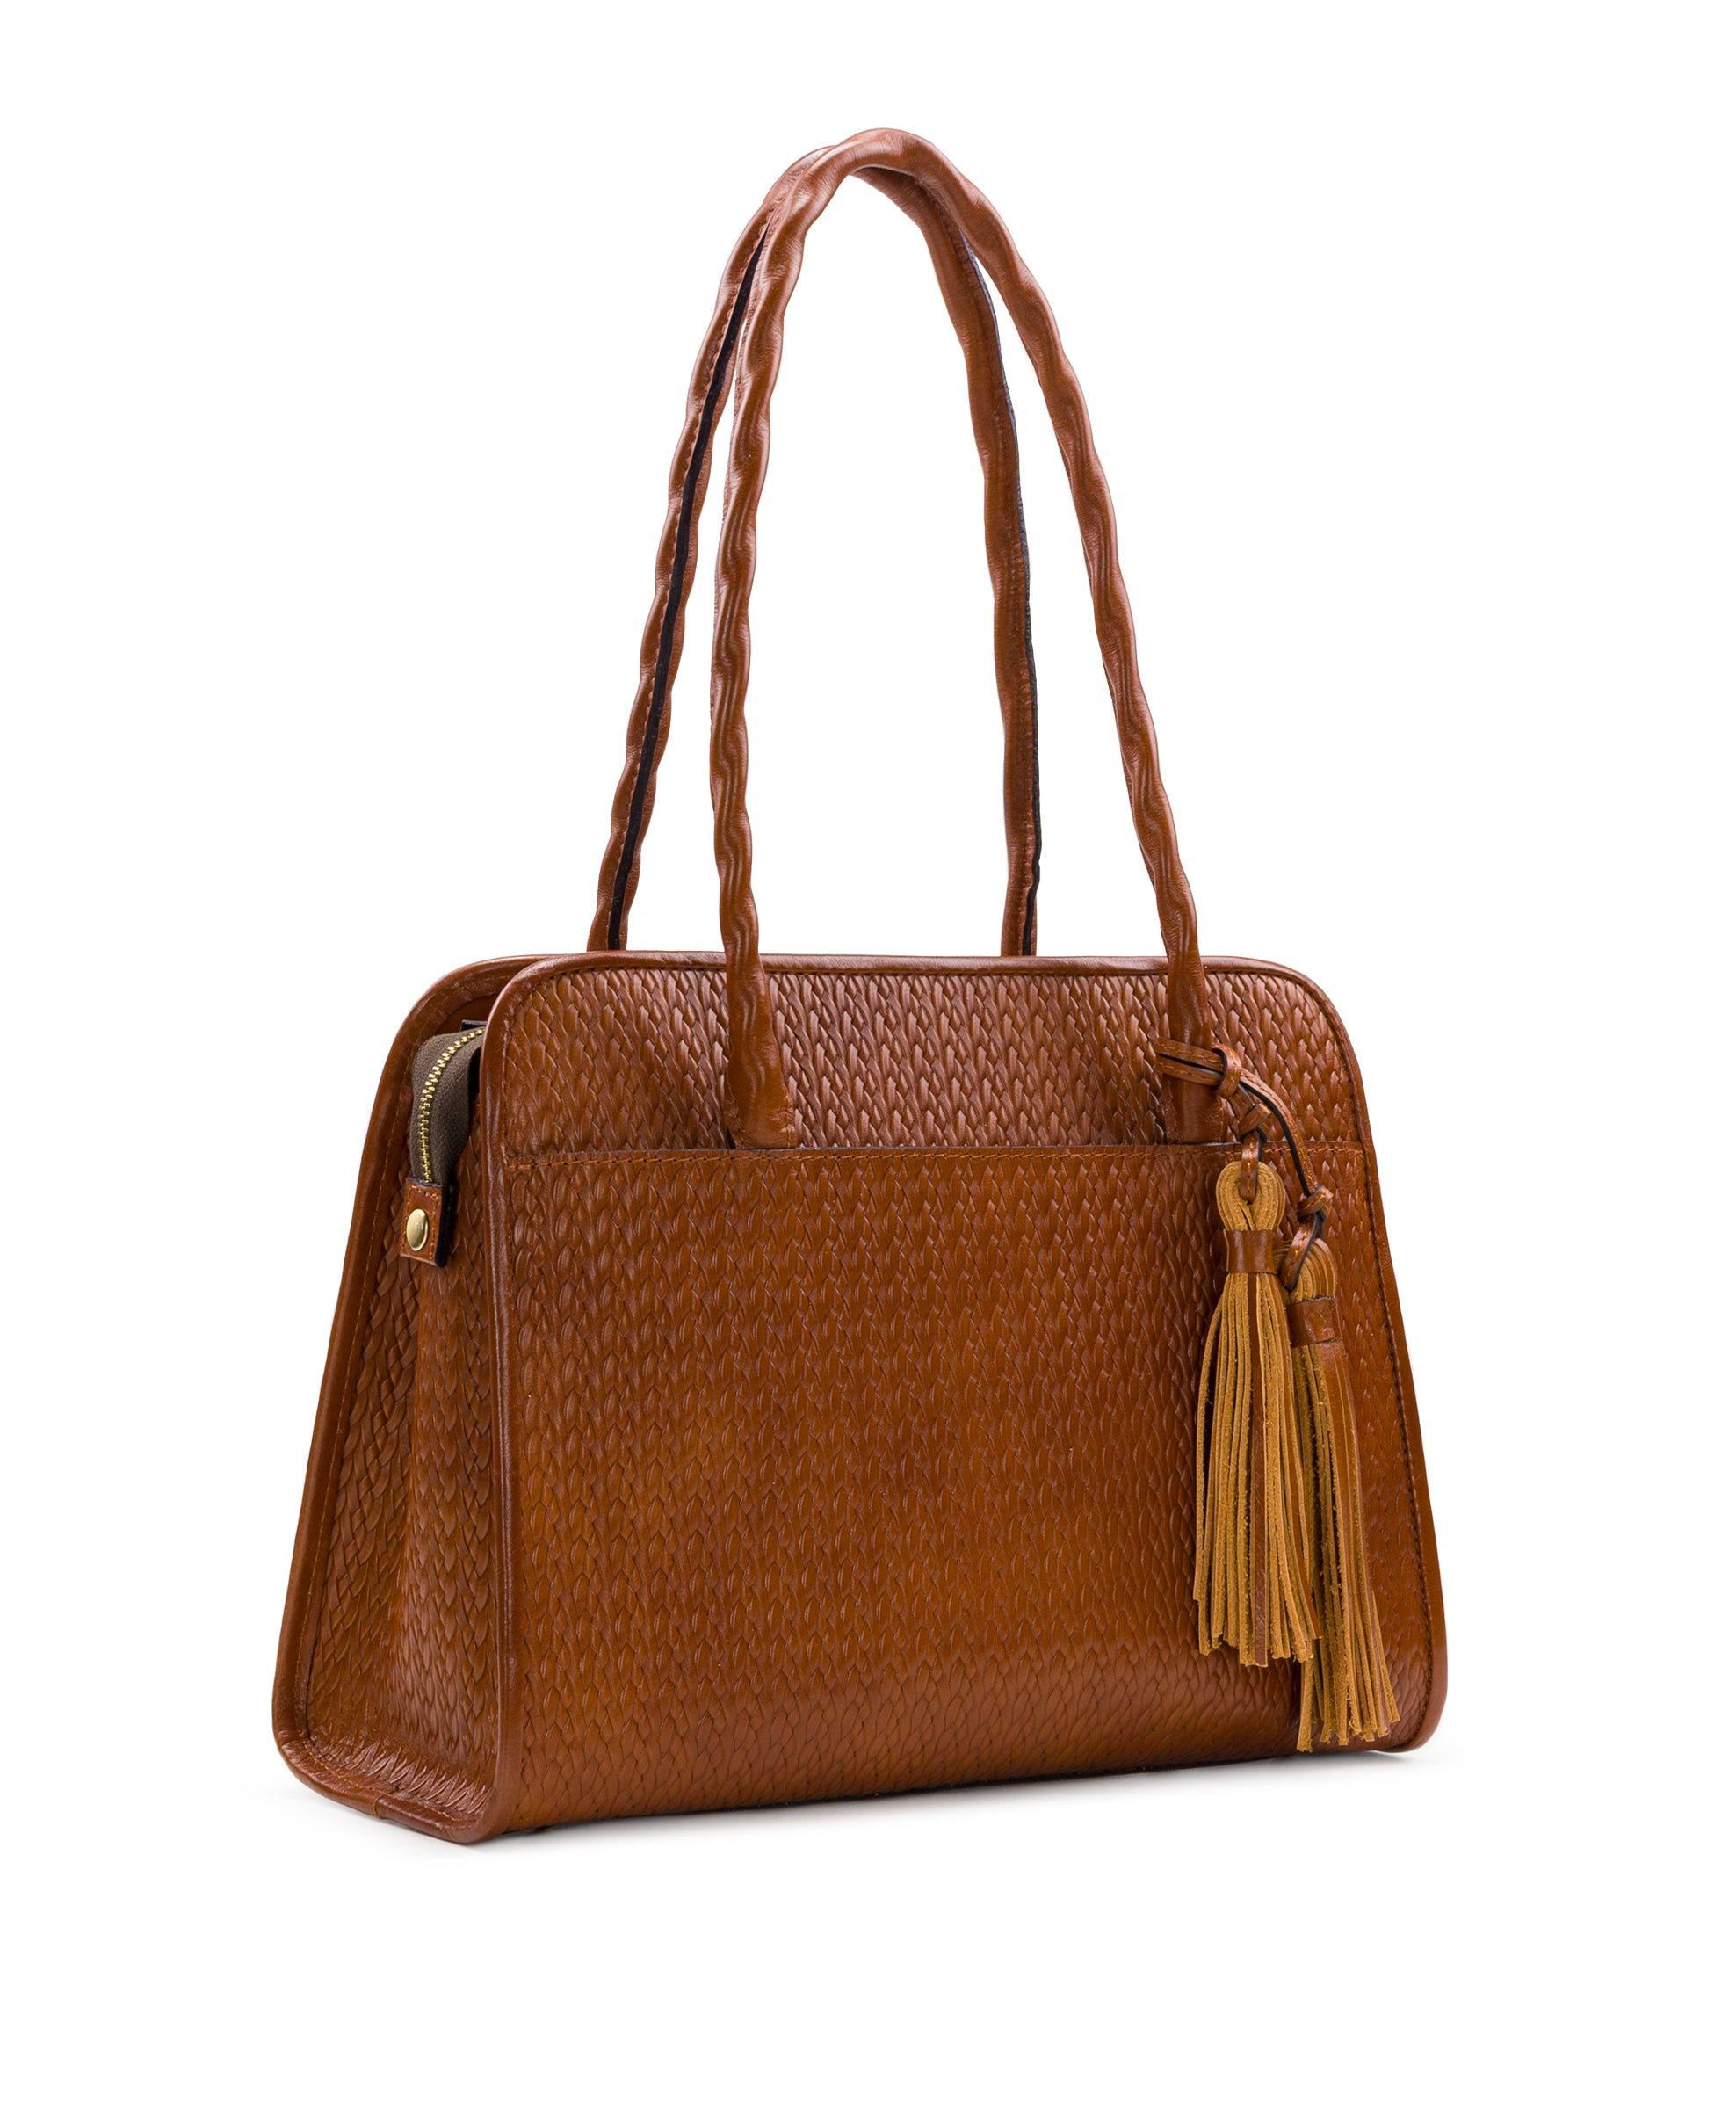 Paris Large Satchel - Twisted Woven Embossed 3